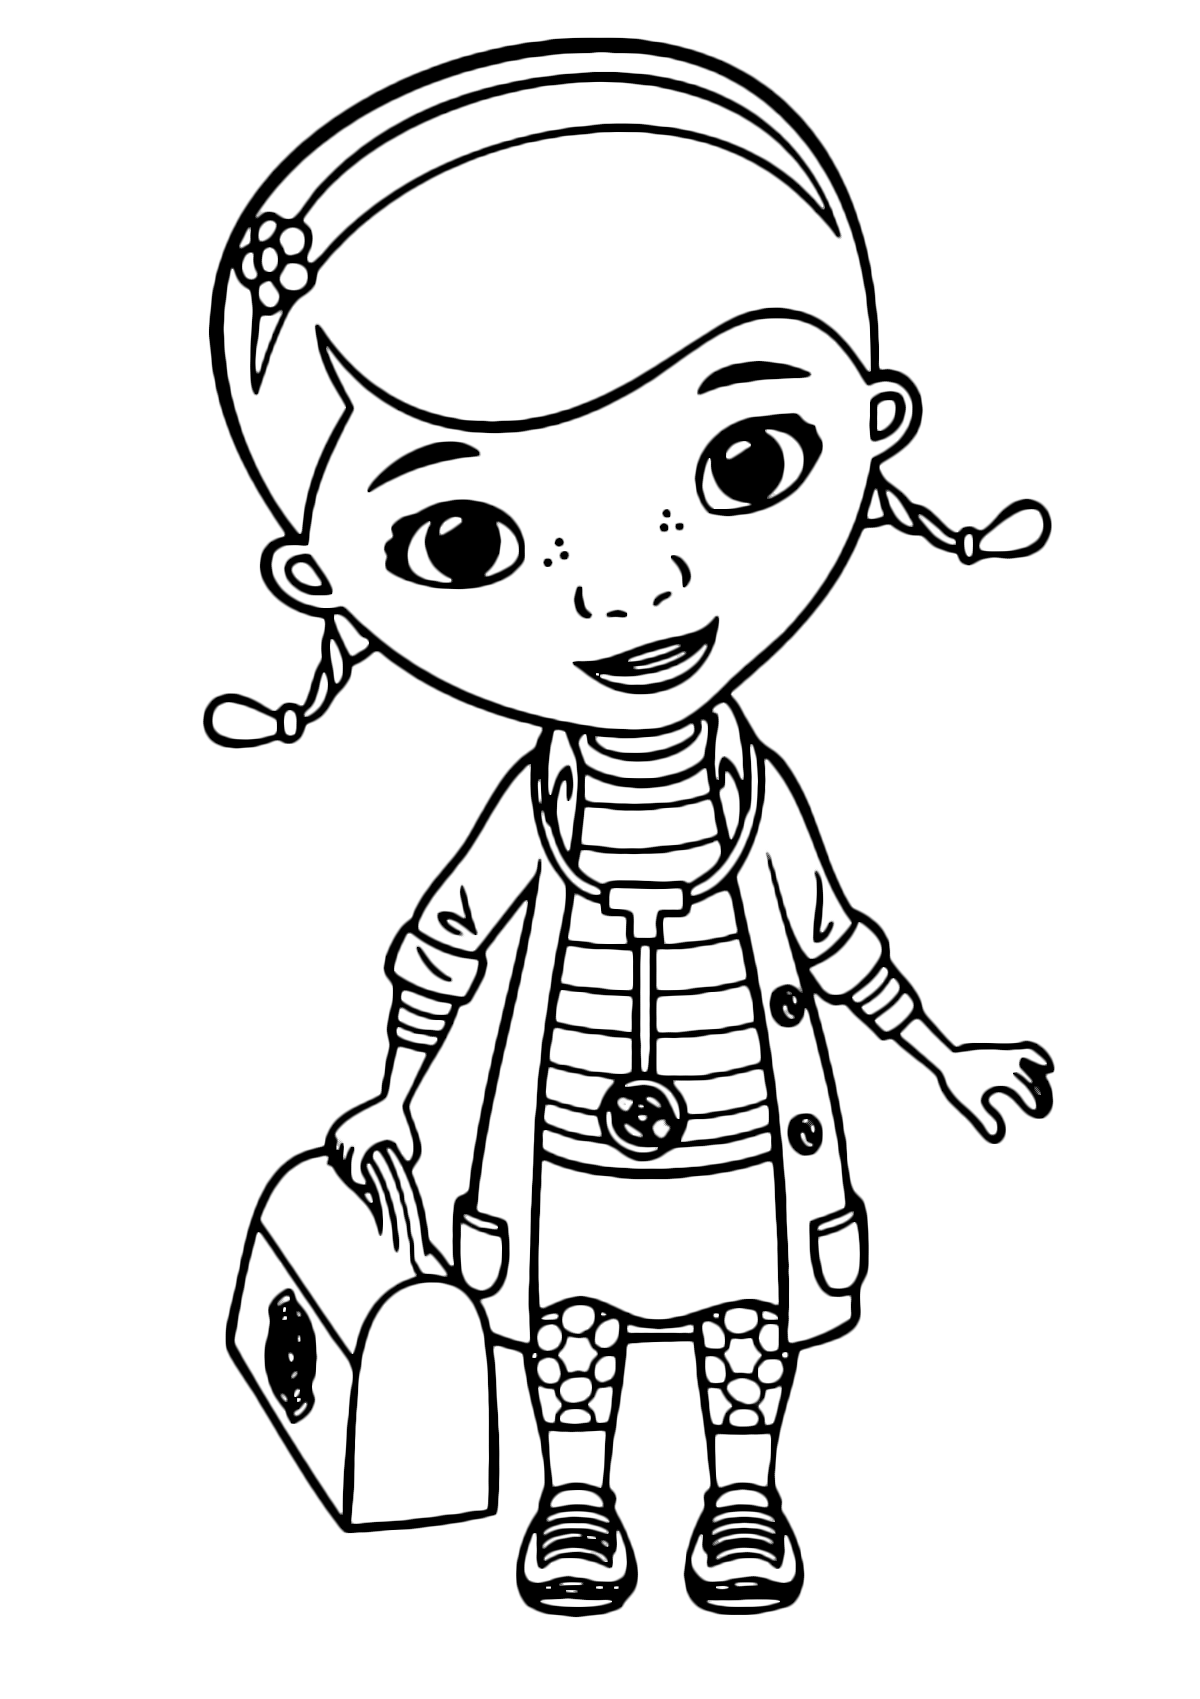 Doc McStuffins - Dottie Doc McStuffins with her bag and the stethoscope